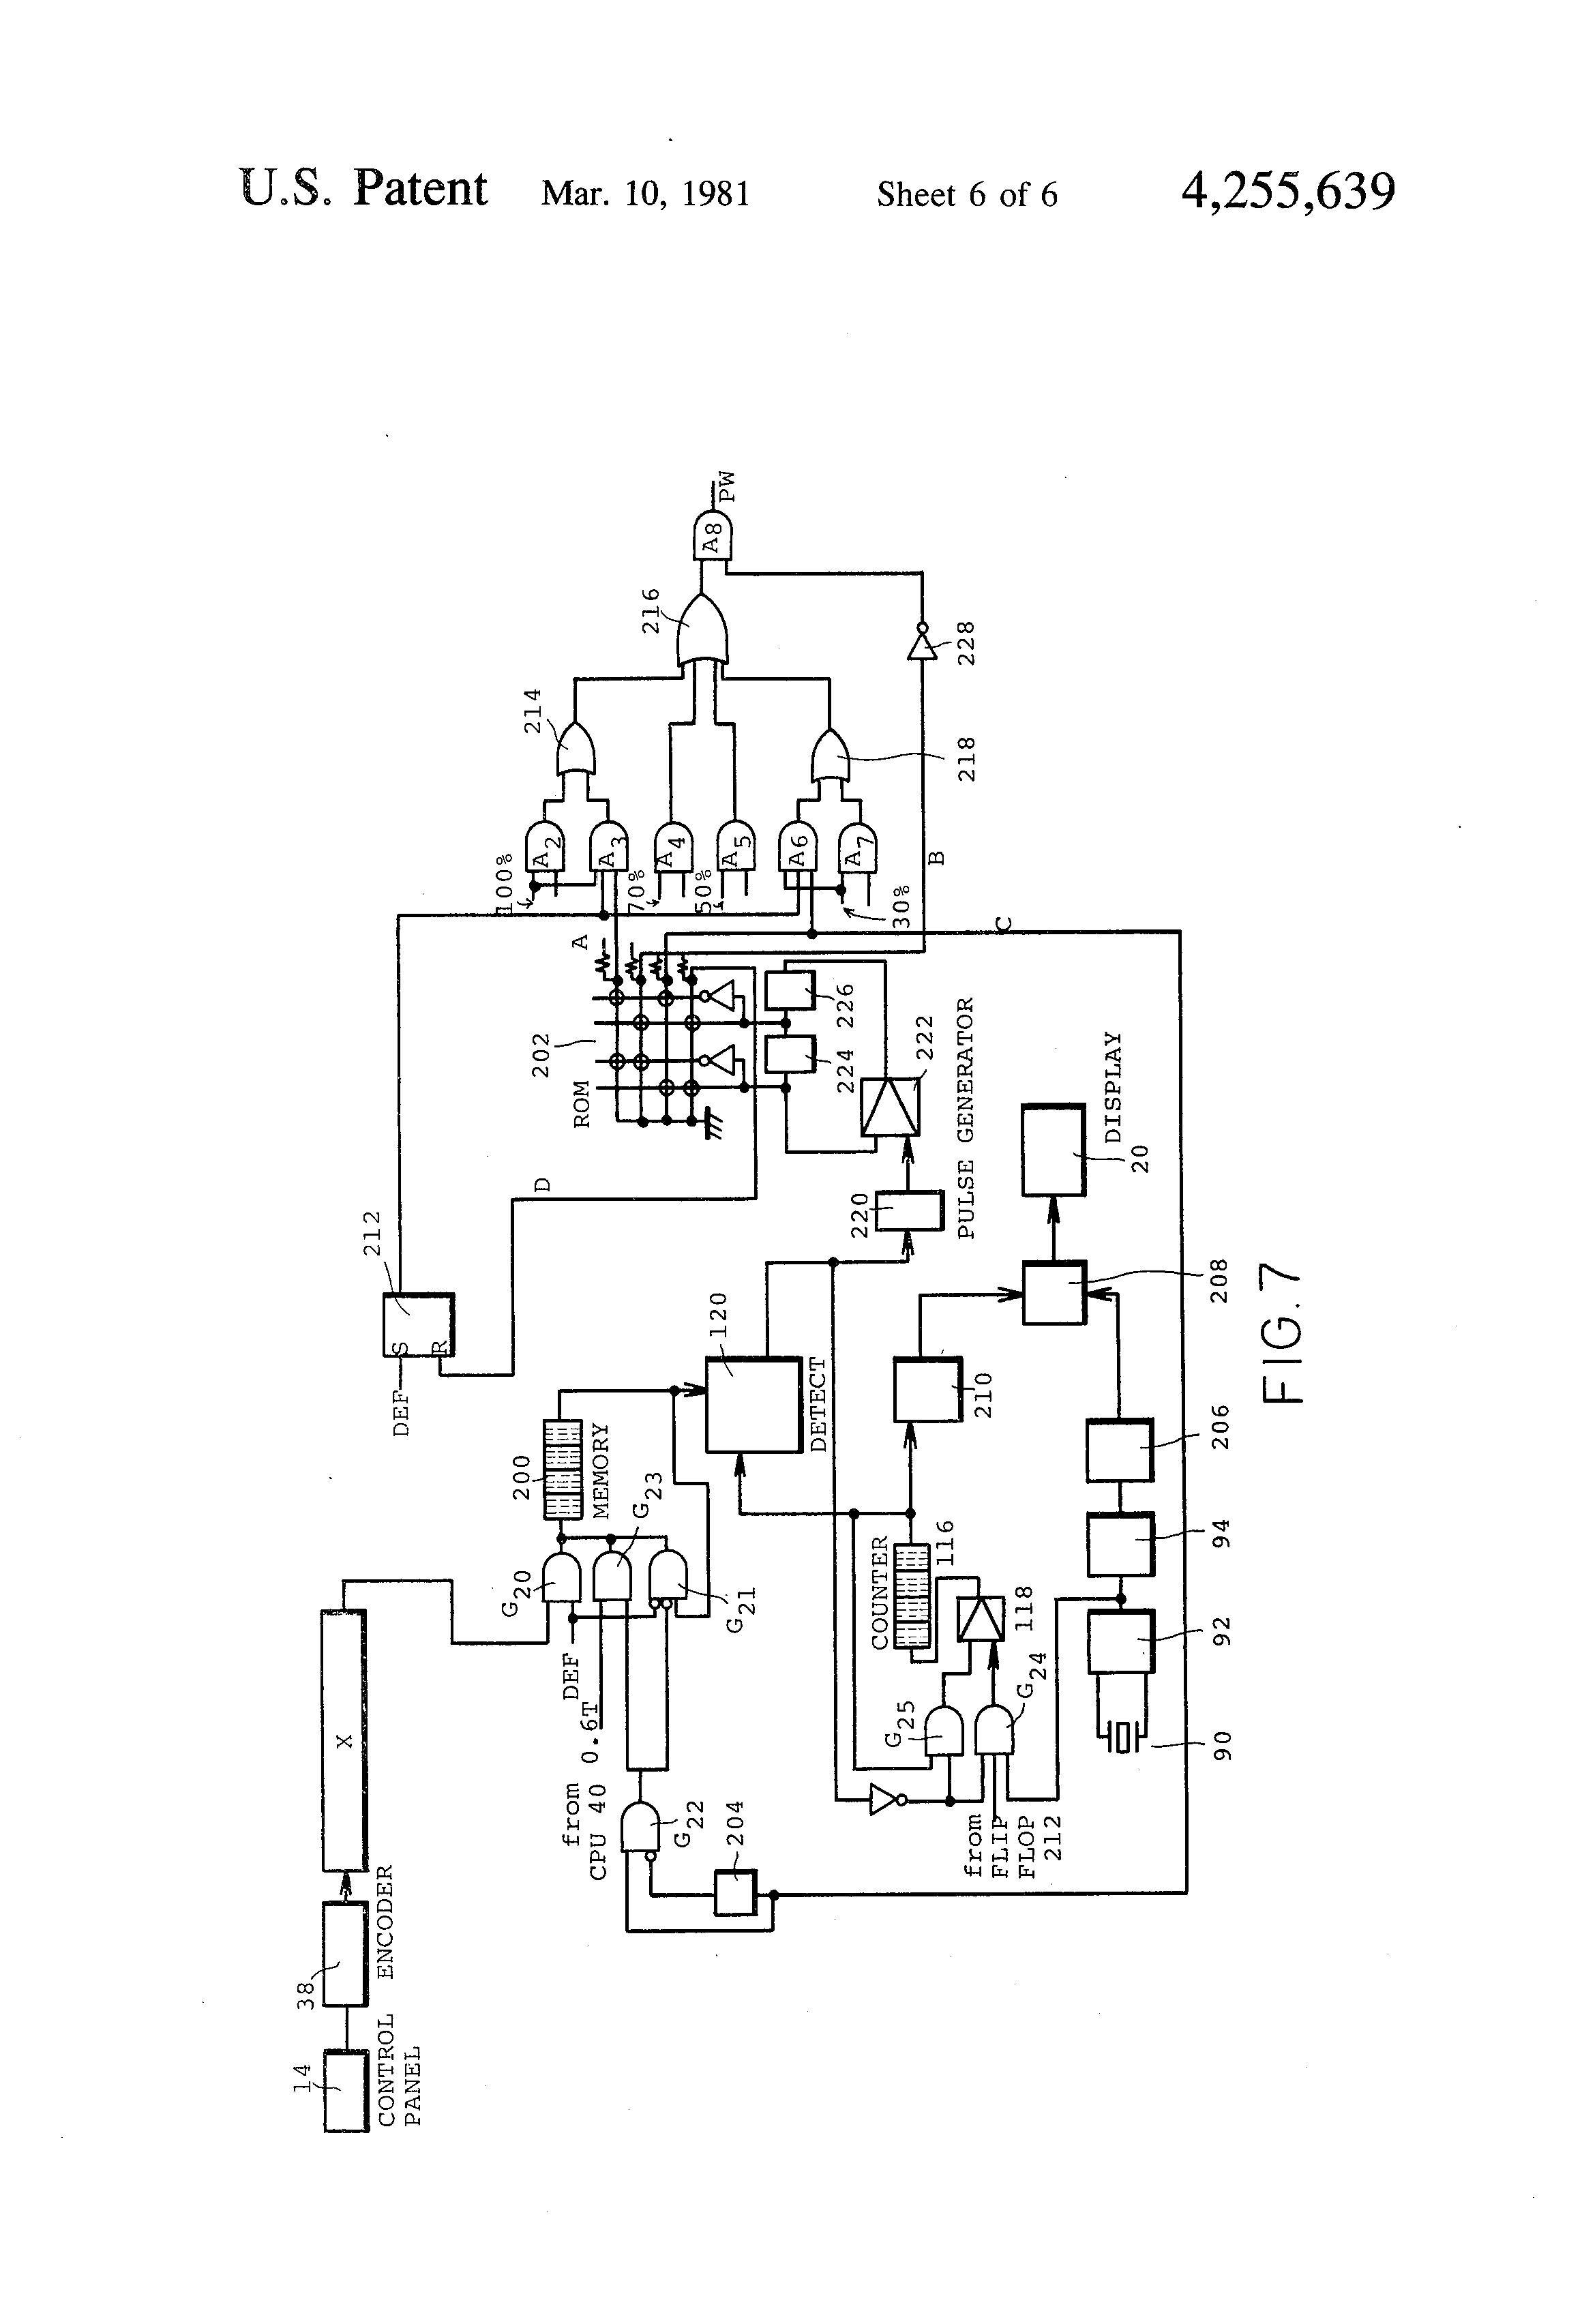 Wiring Diagram For Defrost Timer Also Toaster Oven Switch Diagram As